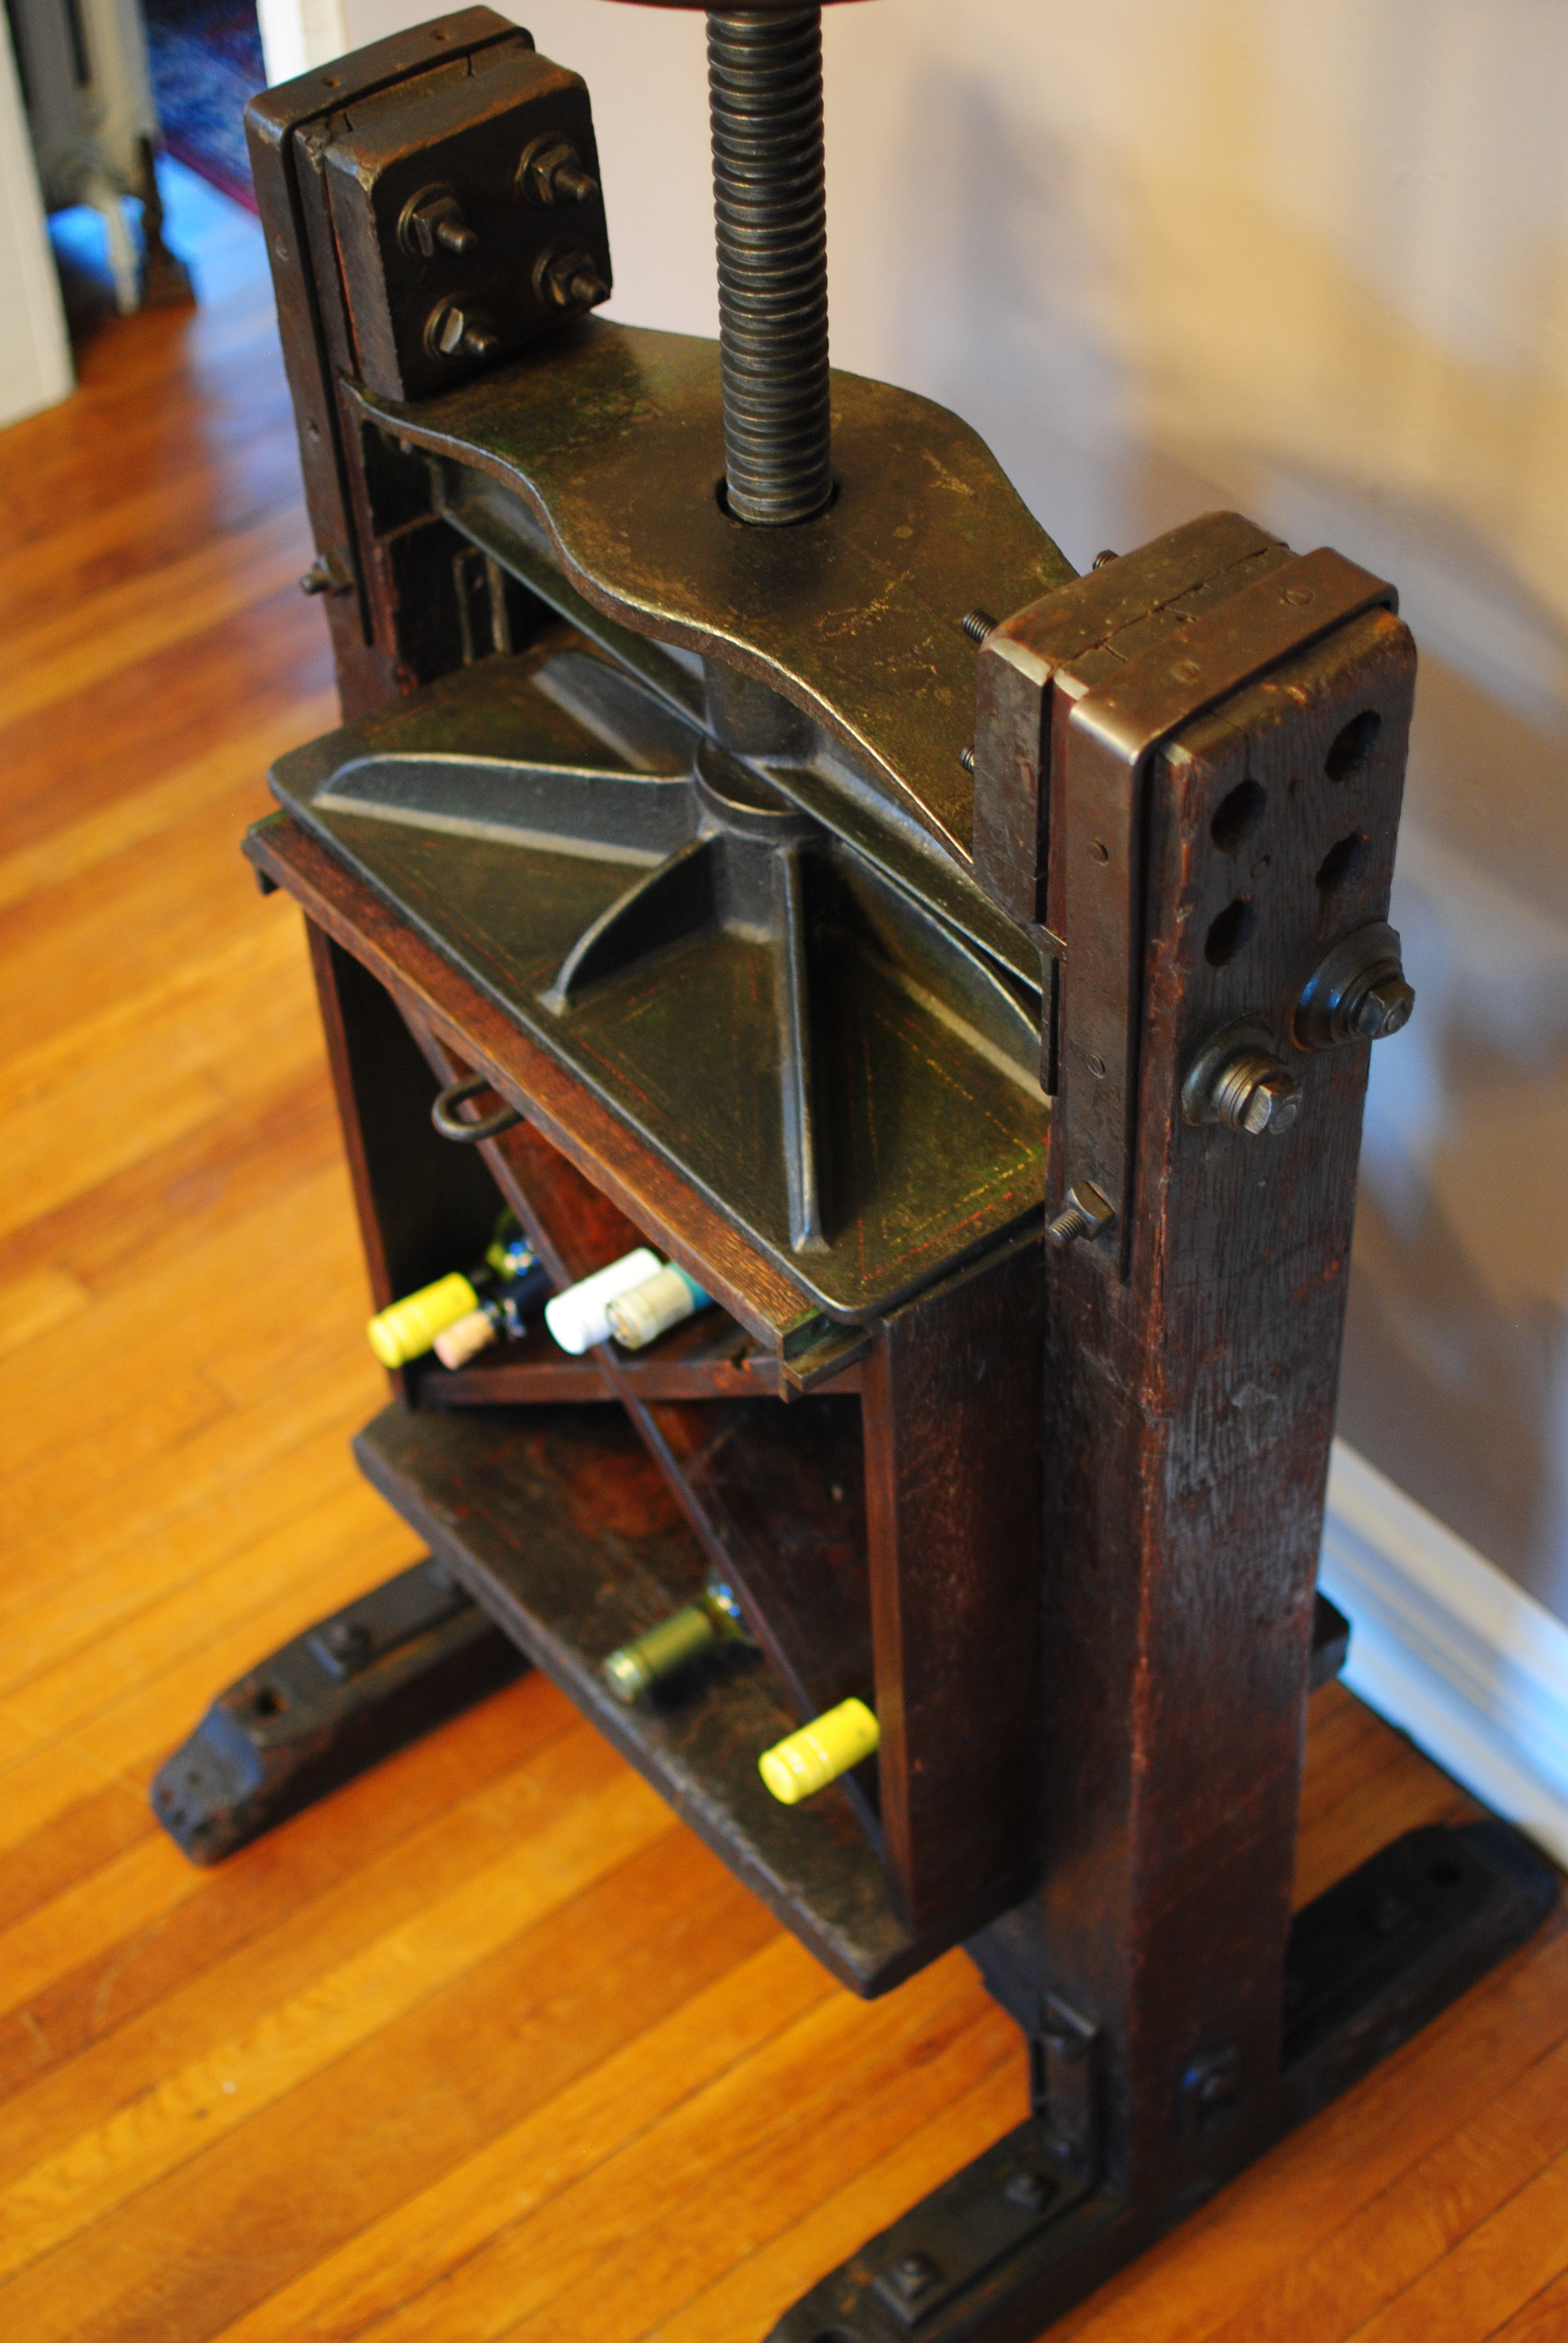 An 1860 S Book Press Repurposed Into Wine Bar Storage And